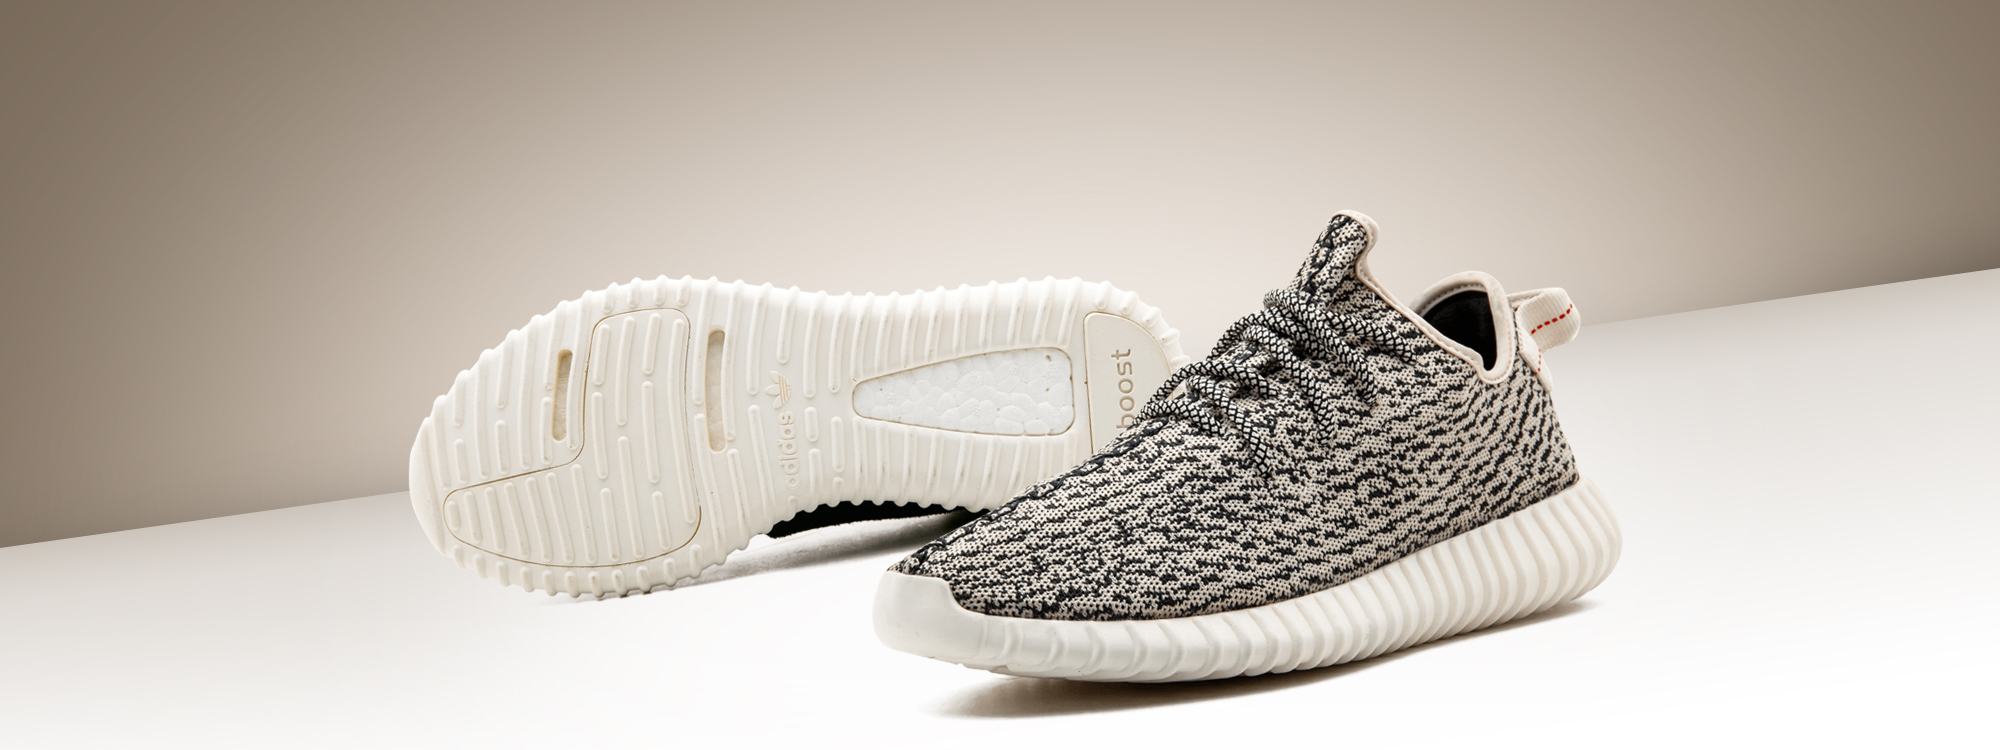 Perfect Adidas Yeezy Boost 350 Turtle Dove shoes